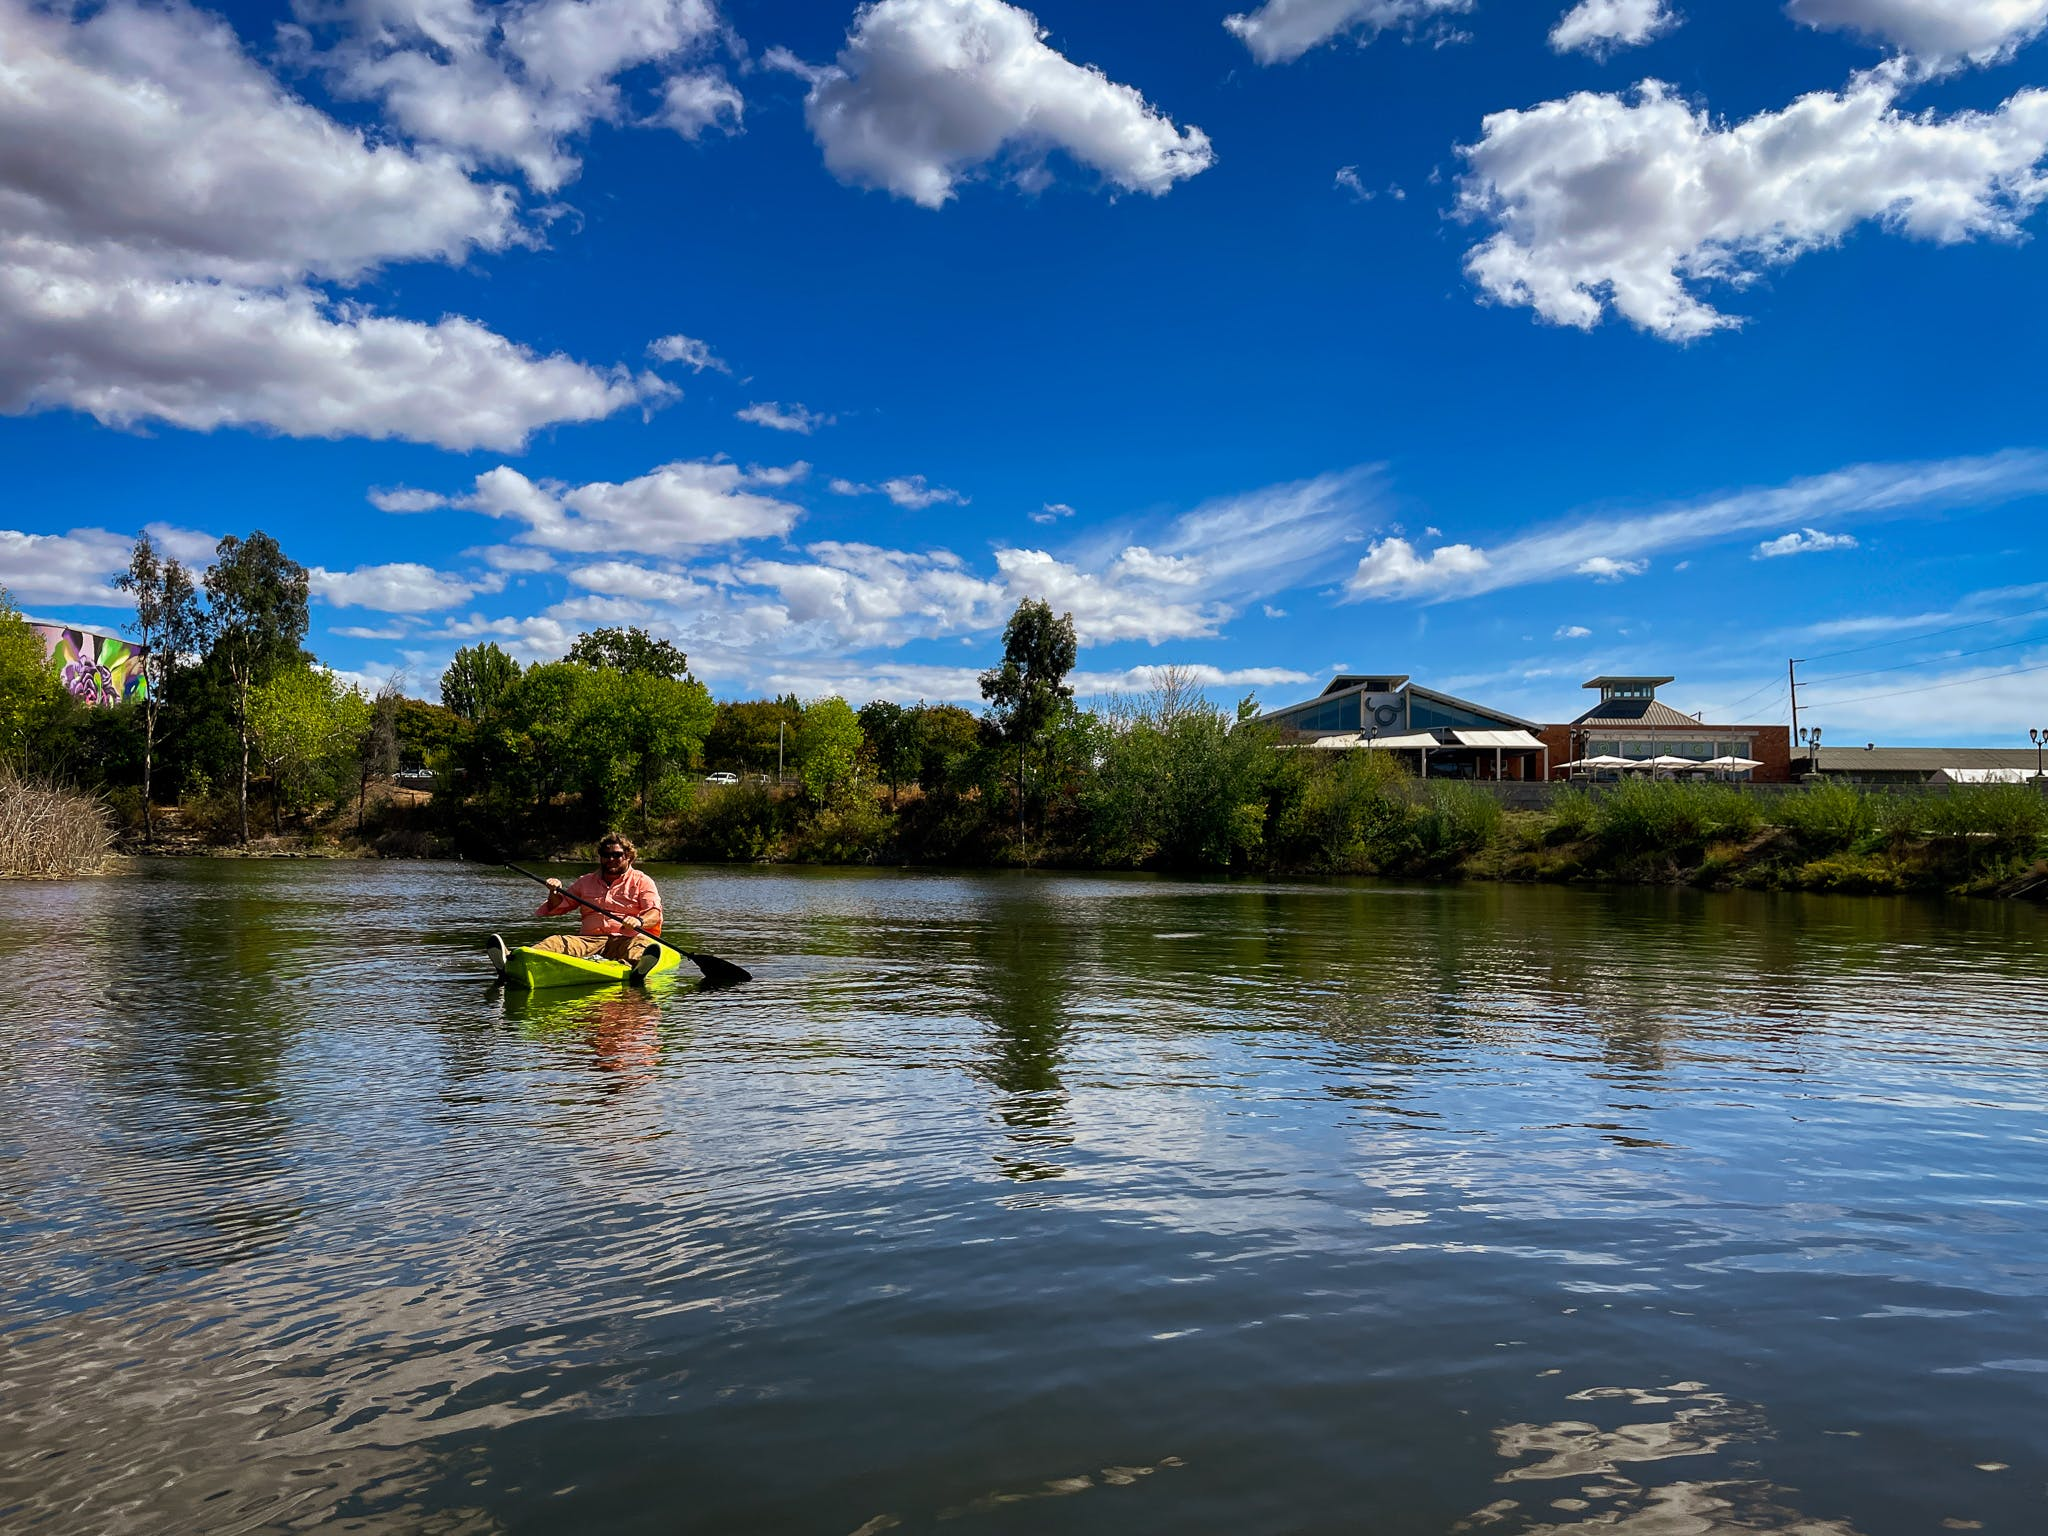 Kayaker on the Napa Valley River